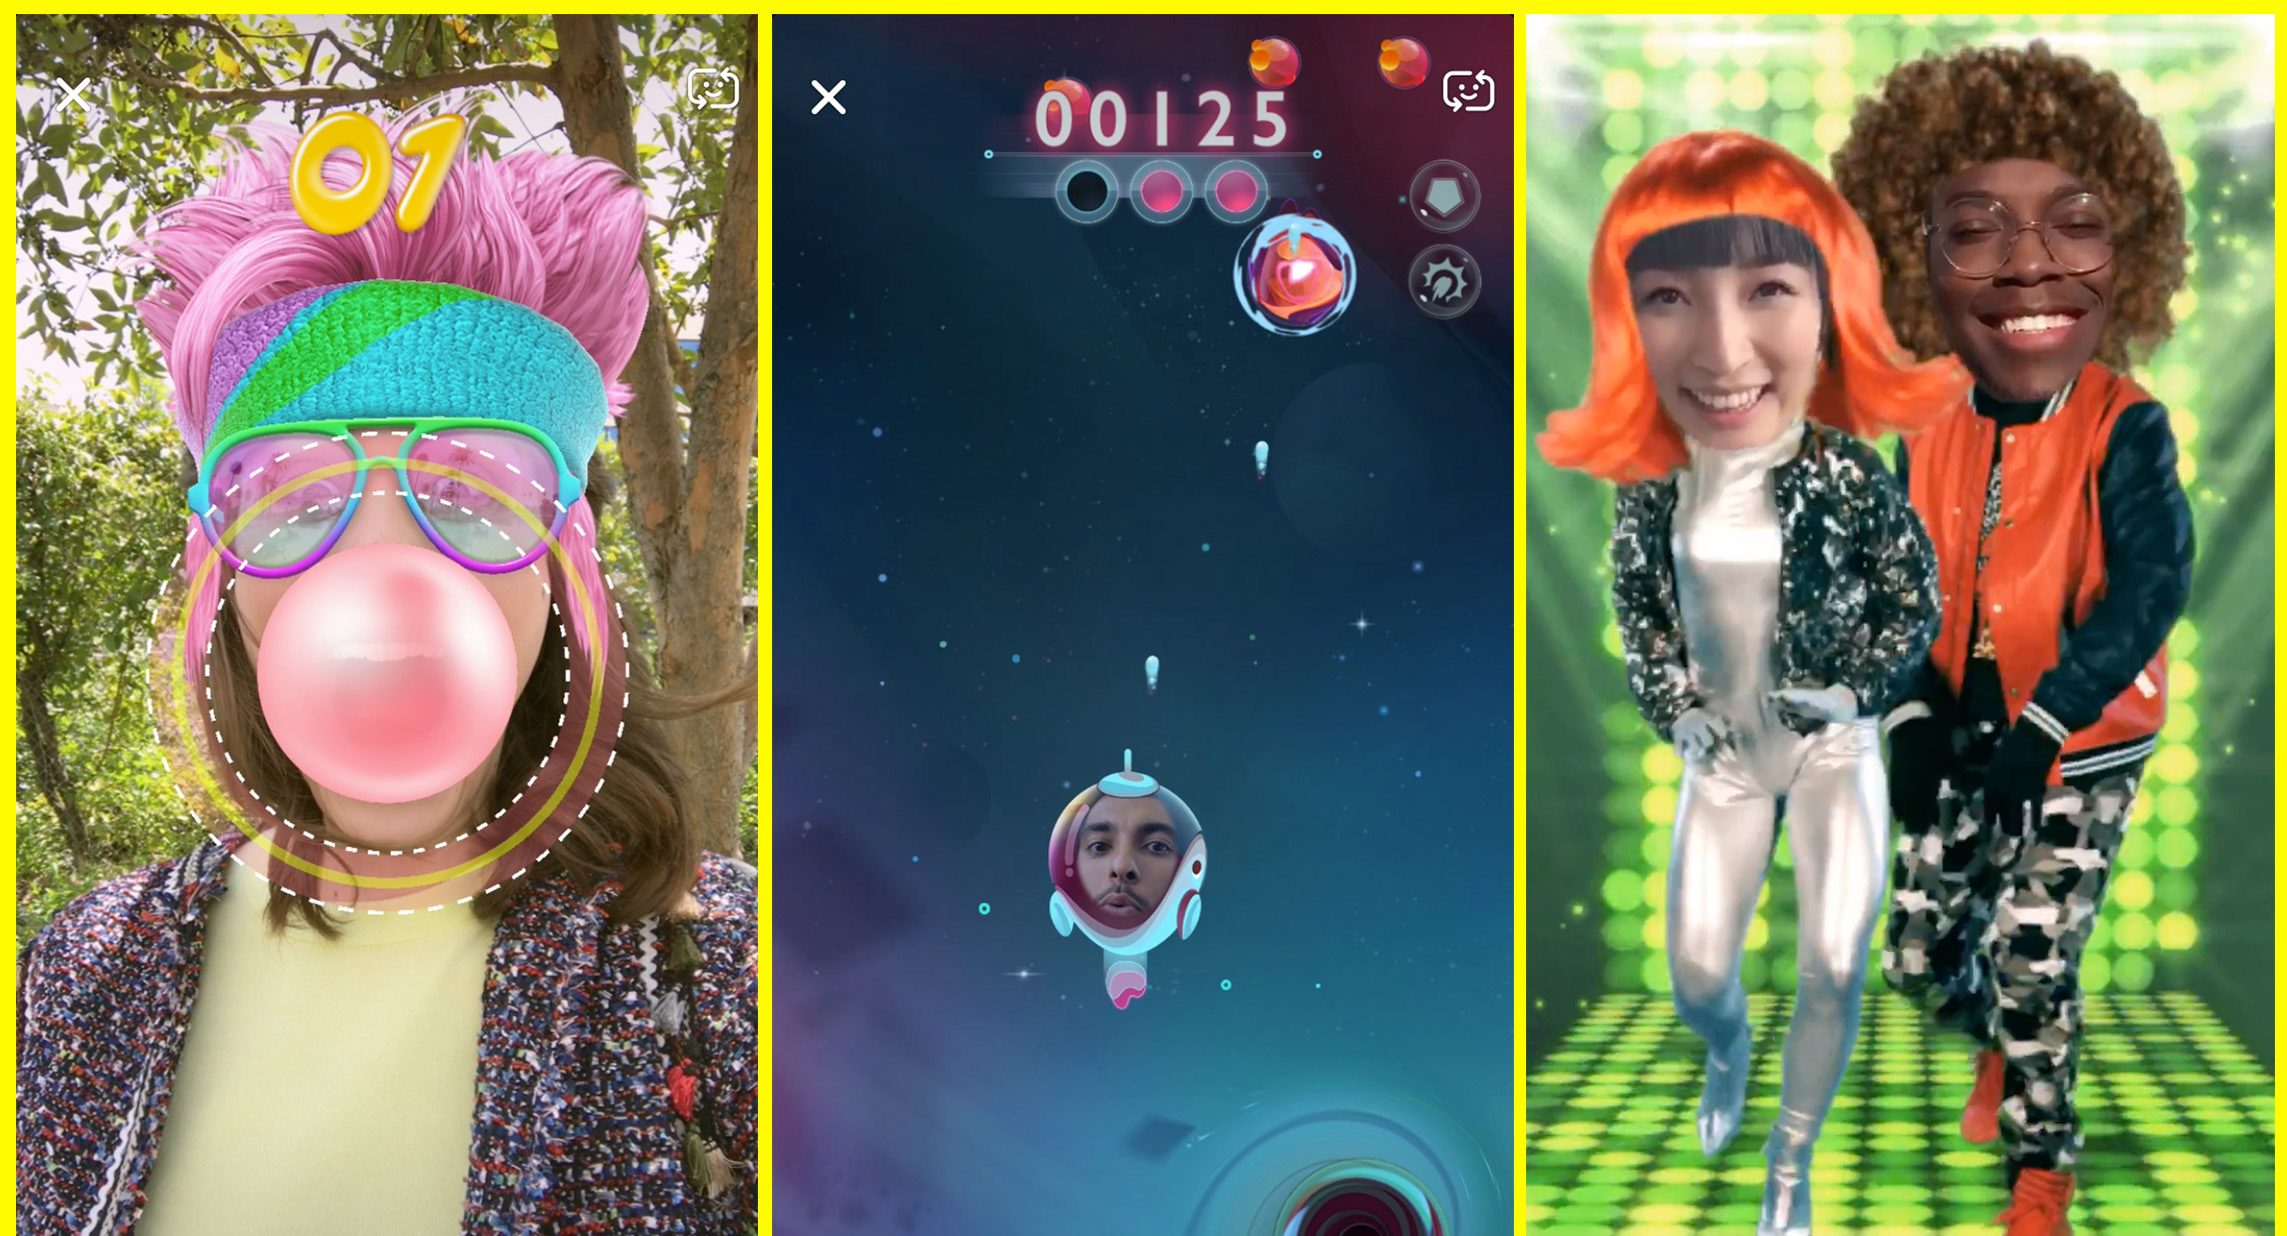 Snap introduces Snappables AR games for Snapchat